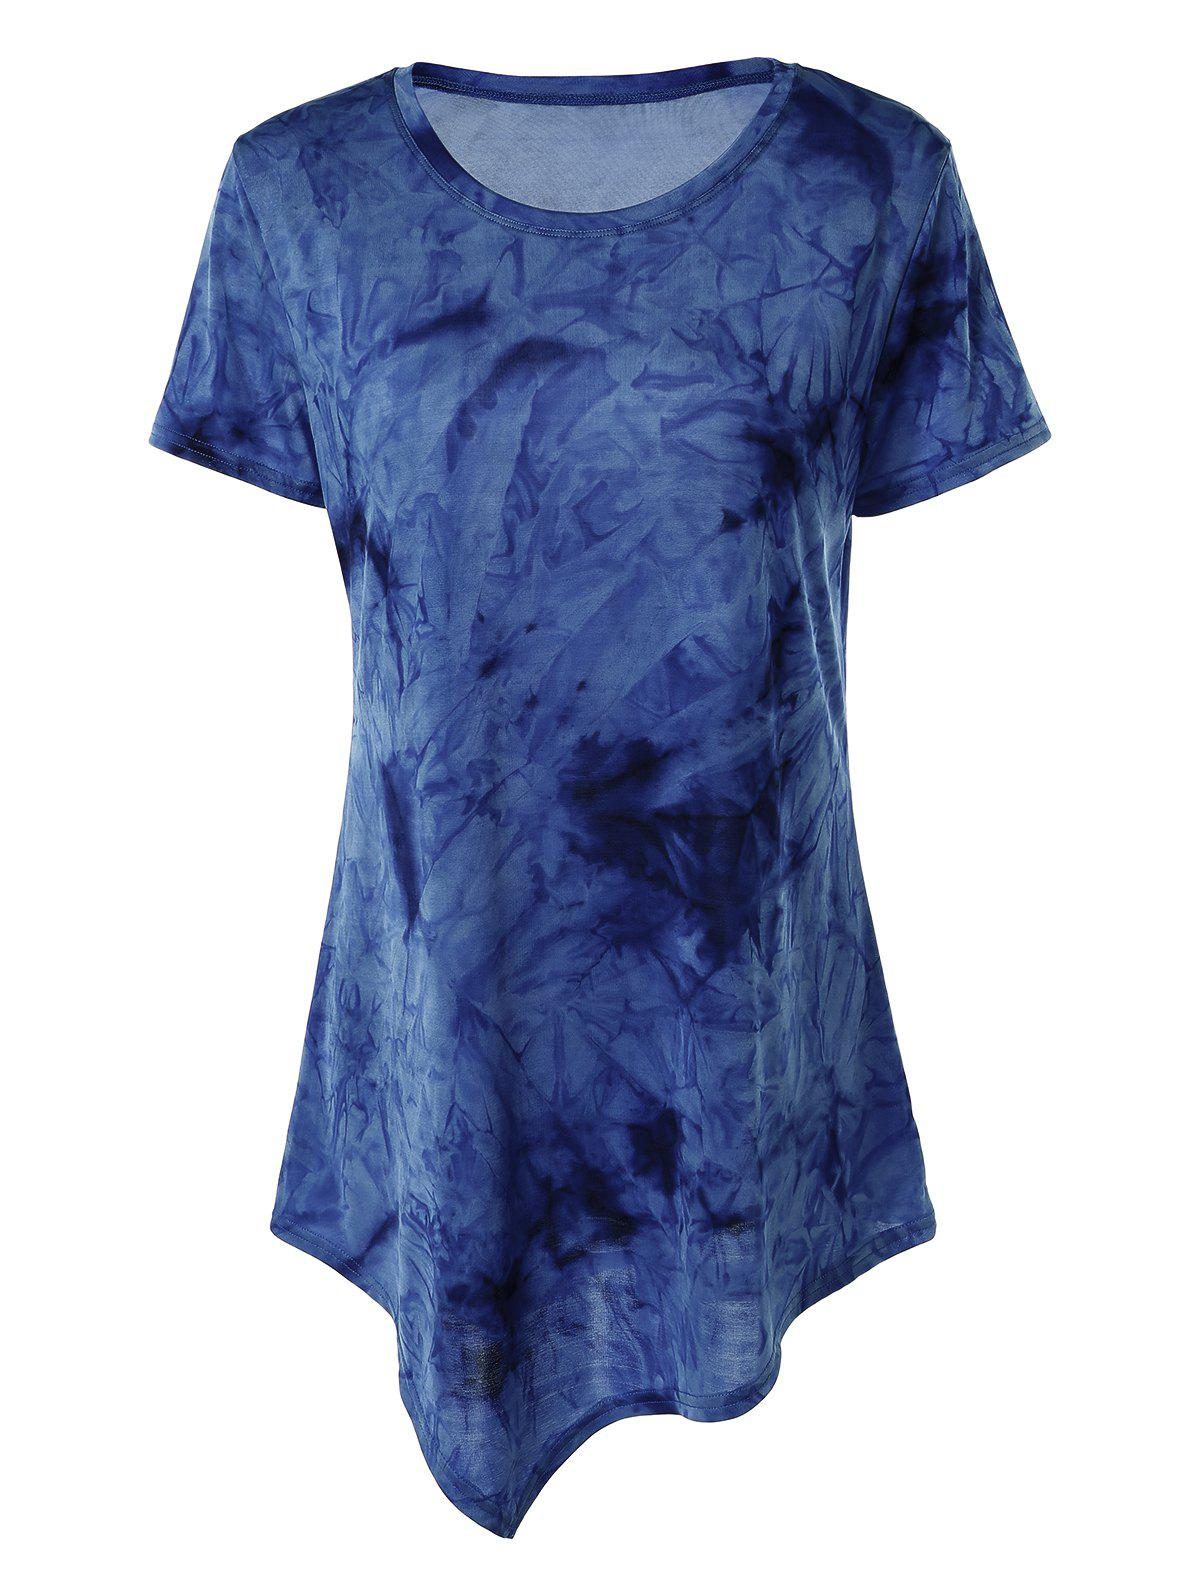 Asymmetrical Long Tie Dye T-Shirt - BLUE XL